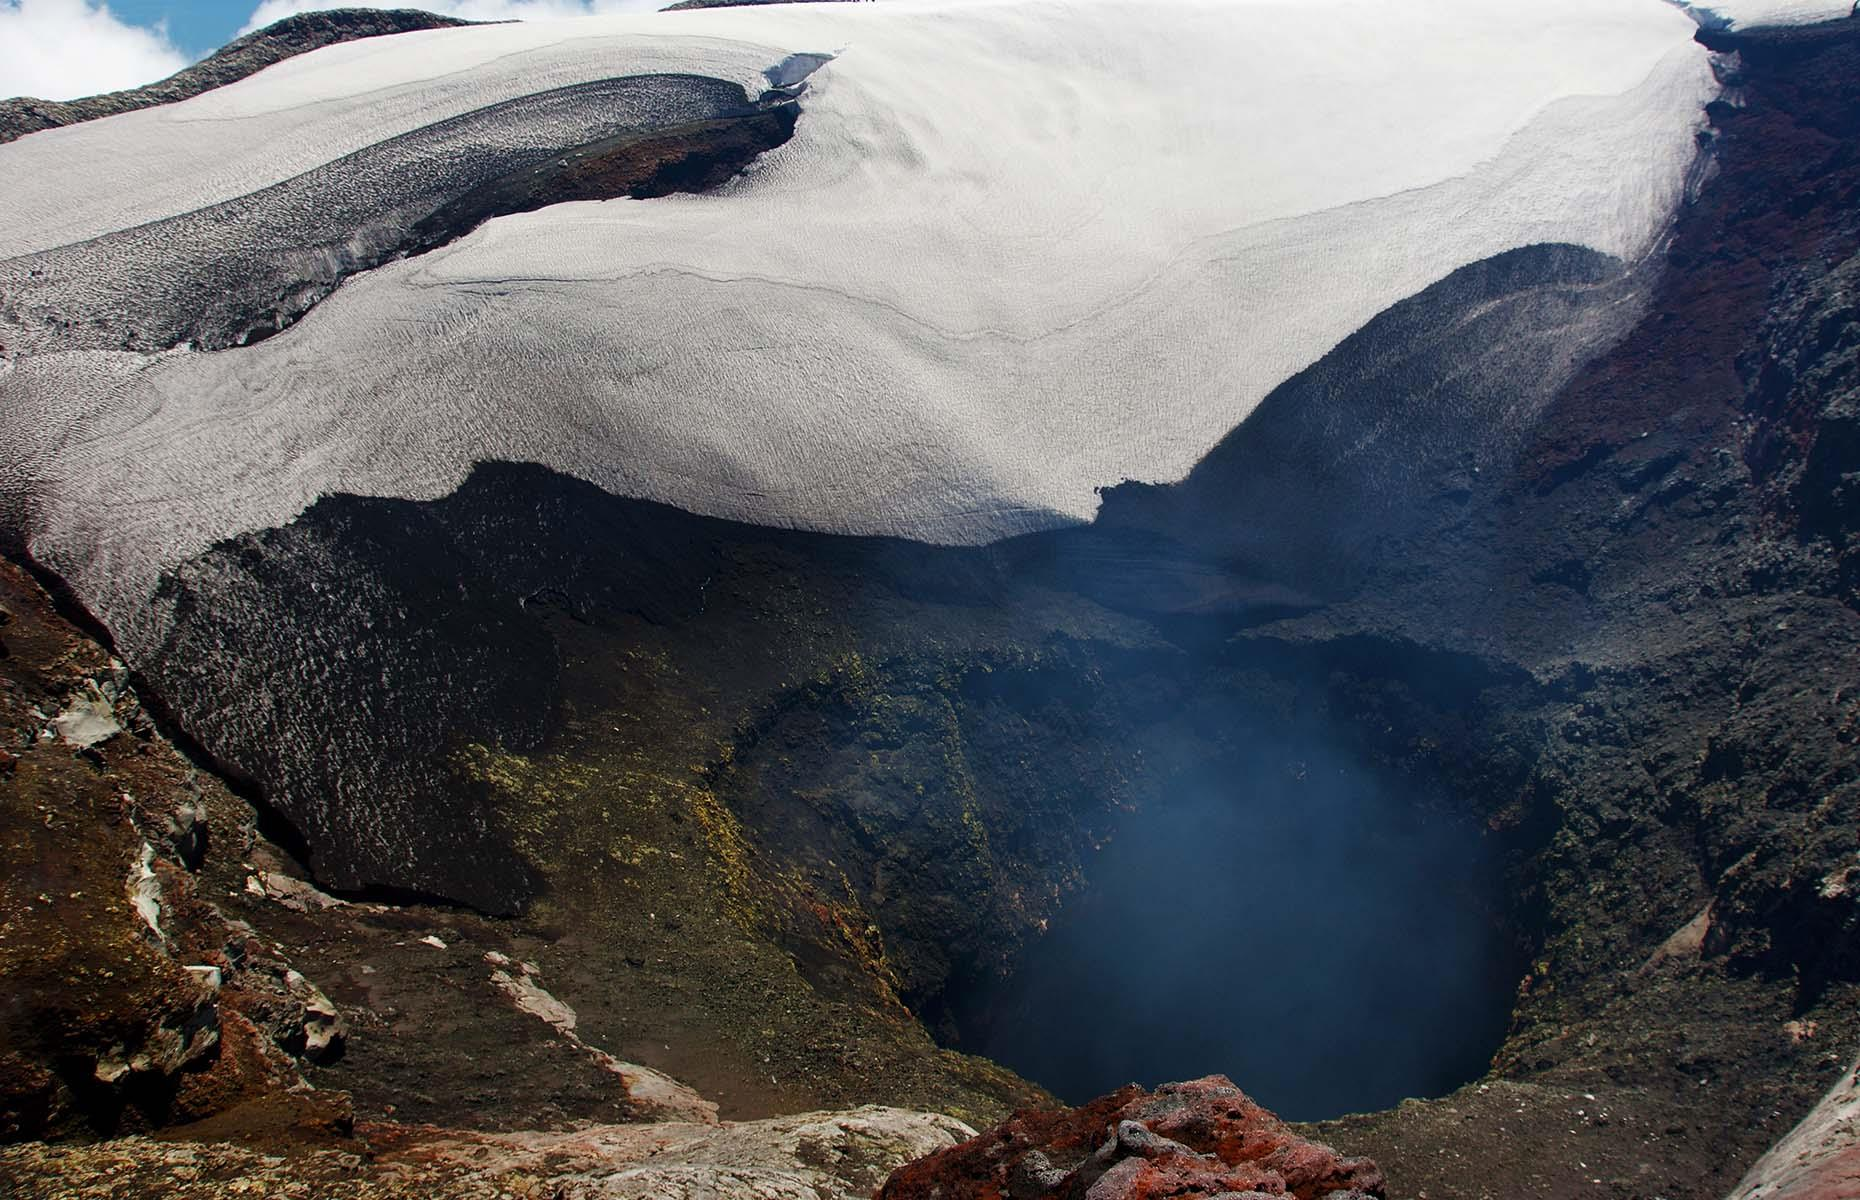 Slide 21 of 41: Villarrica was closed for expeditions in 2015 when an eruption blasted out ash and lava and caused more than 3,000 people to be evacuated from nearby homes. In 2019 before the coronavirus pandemic it reopened and offered travelers an option to use a ski lift part way up and then tackle the snow and ice to reach the summit at 9,380 feet (2,860m).